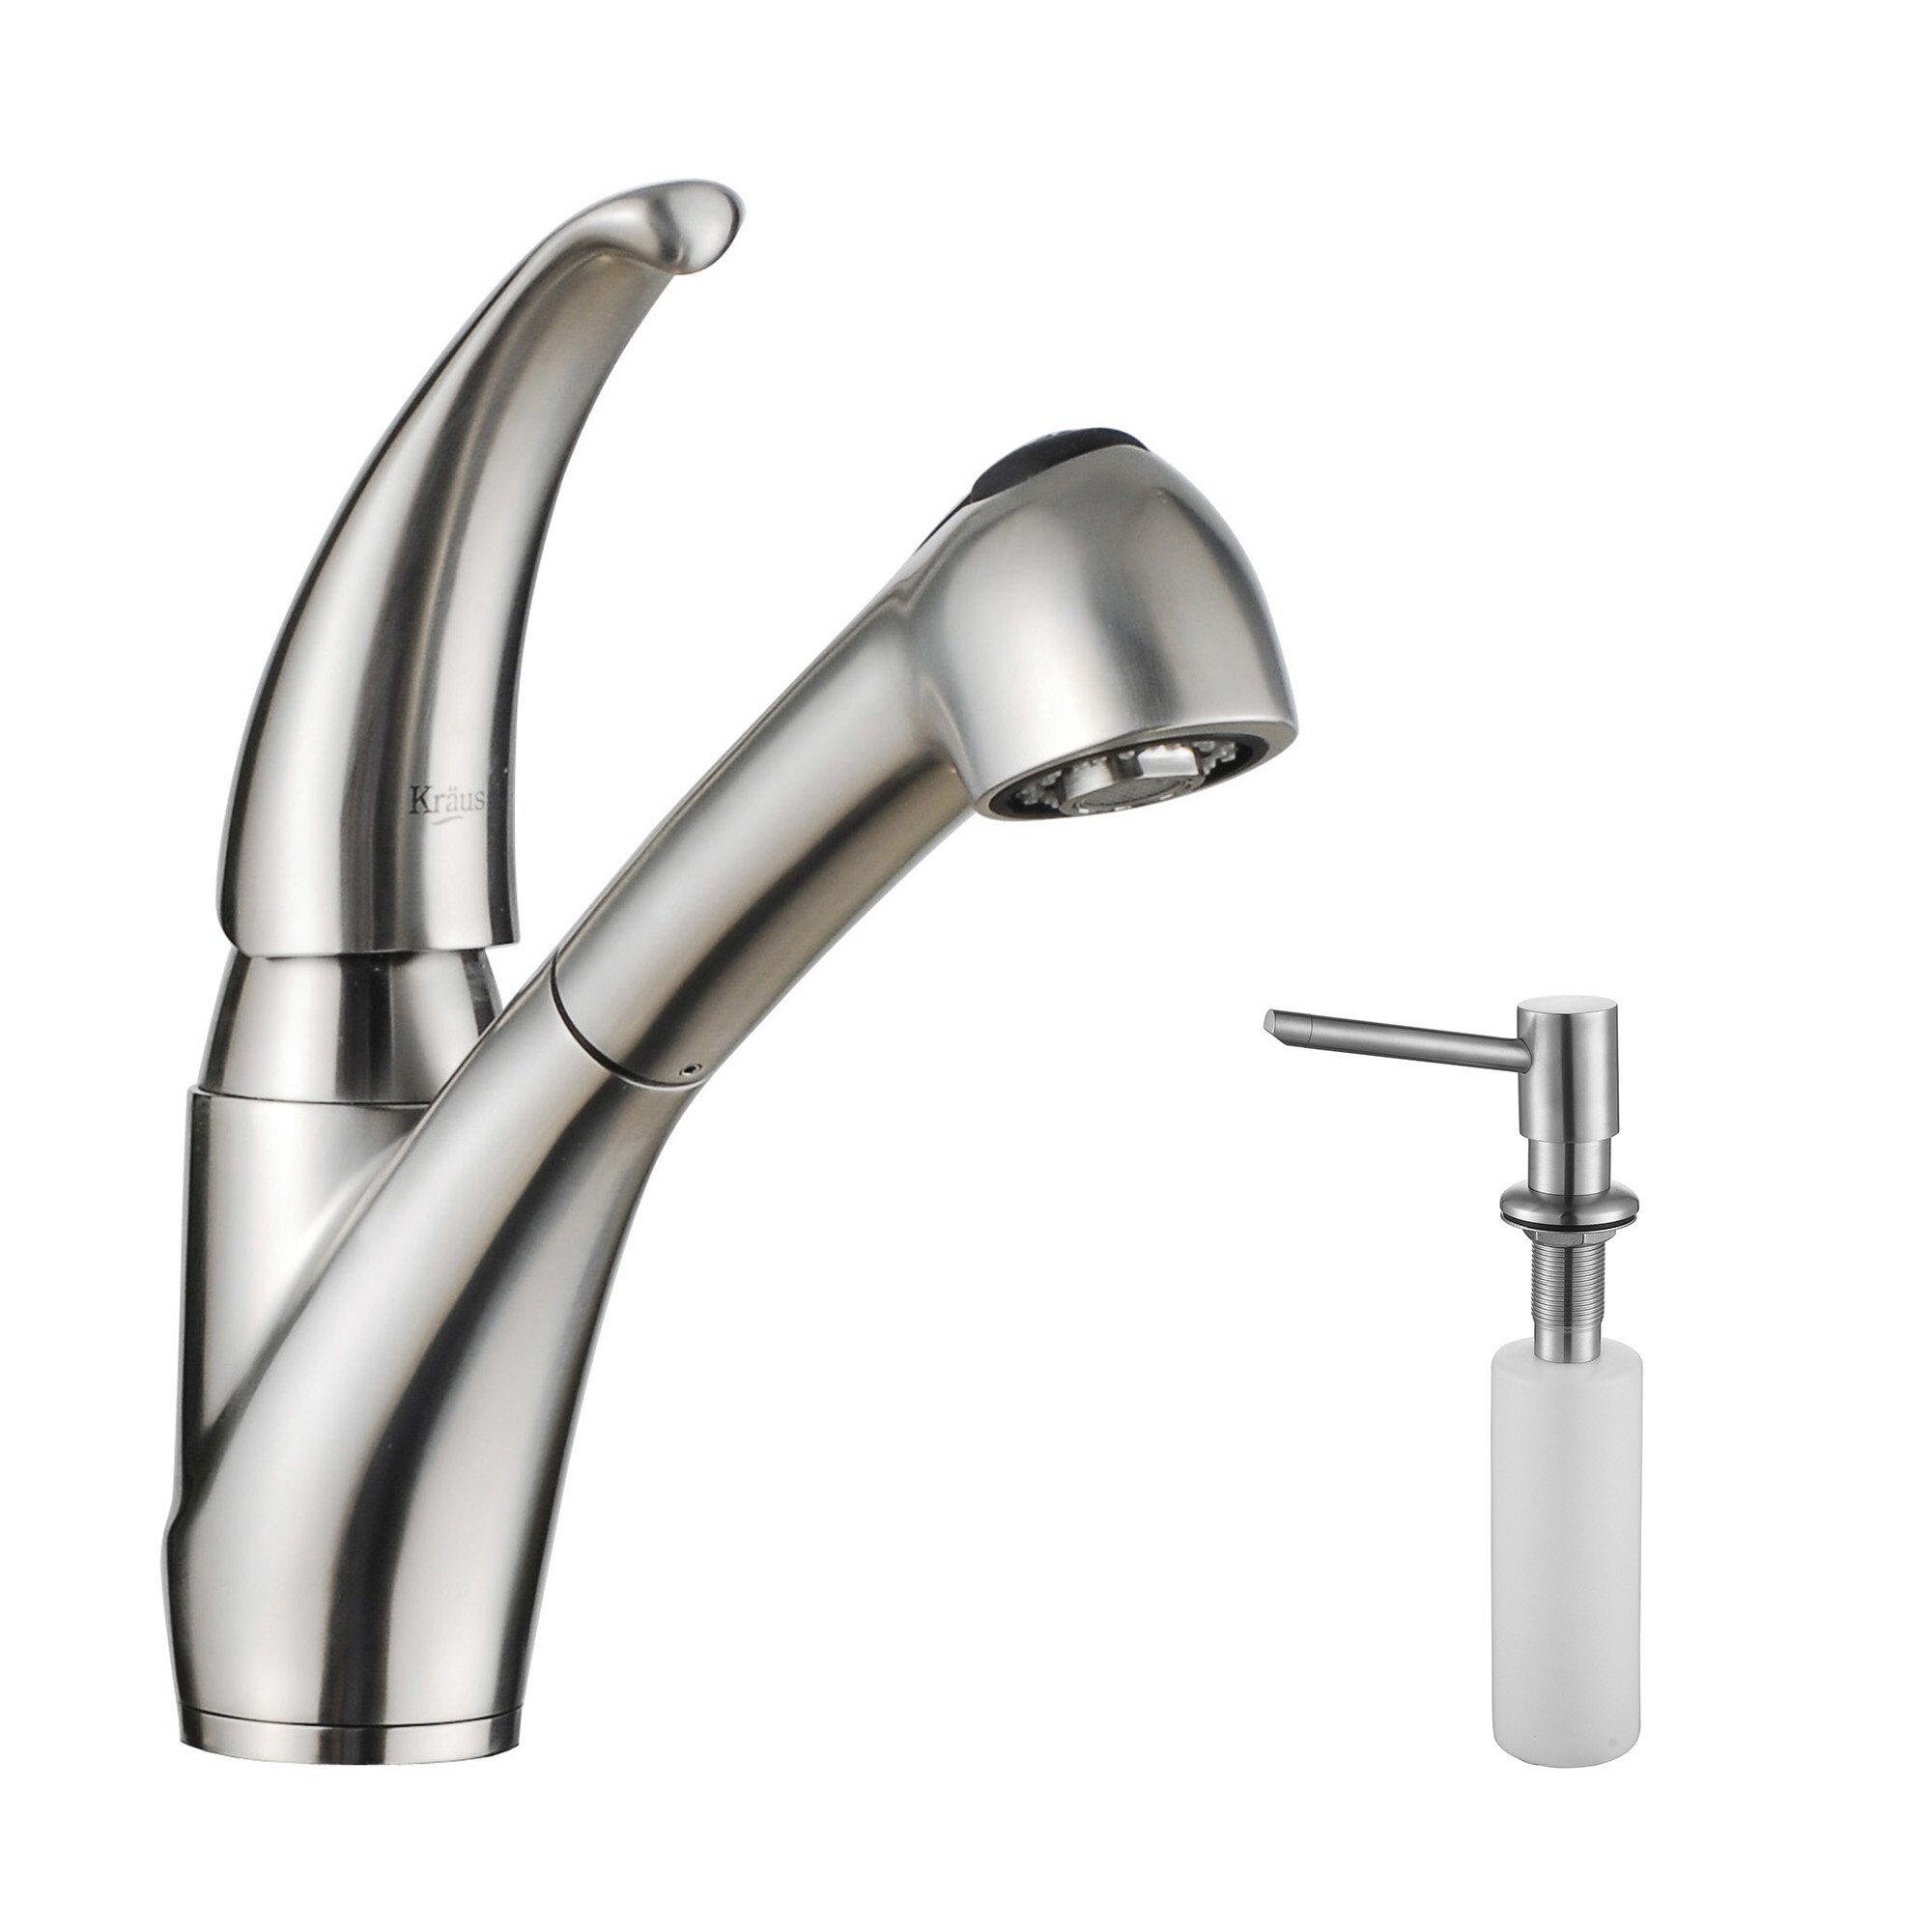 Kitchen Faucet Soap Dispenser Kraus Stainless Steel Pull Out Kitchen Faucet With Soap Dispenser